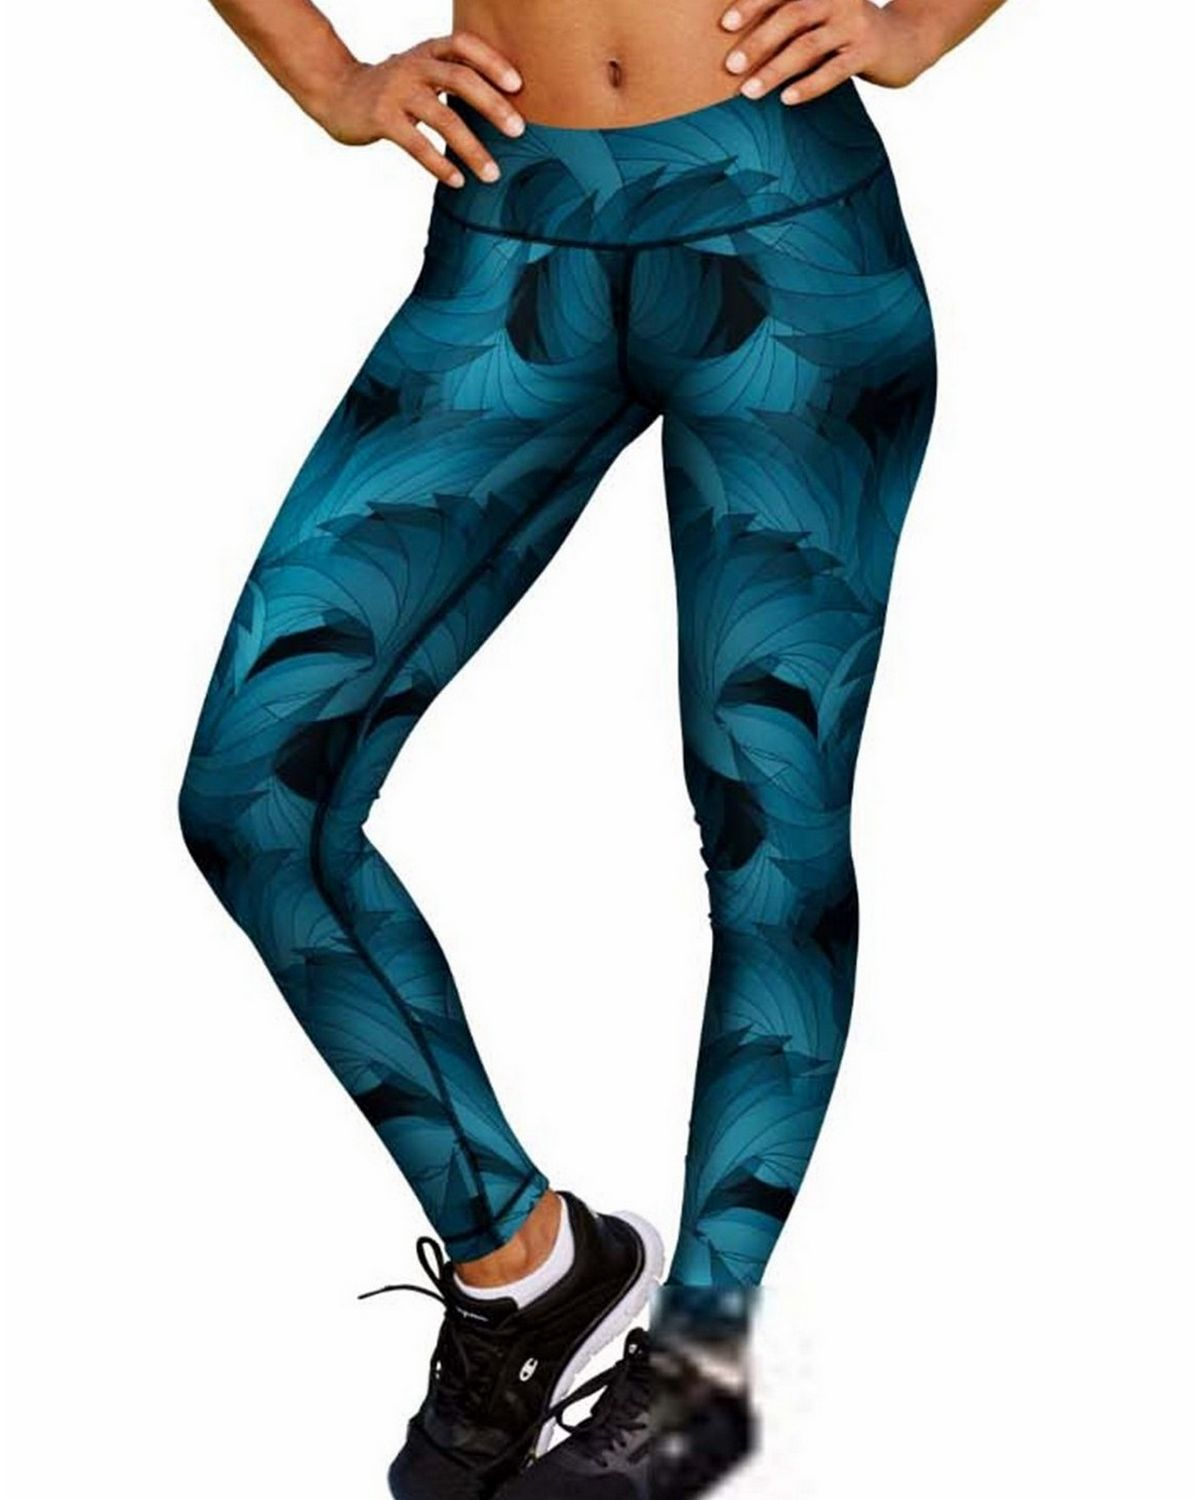 Champion M0130P Womens Absolute Printed Tights - Faded Indigo Blue Ombre Blade Spin - L M0130P